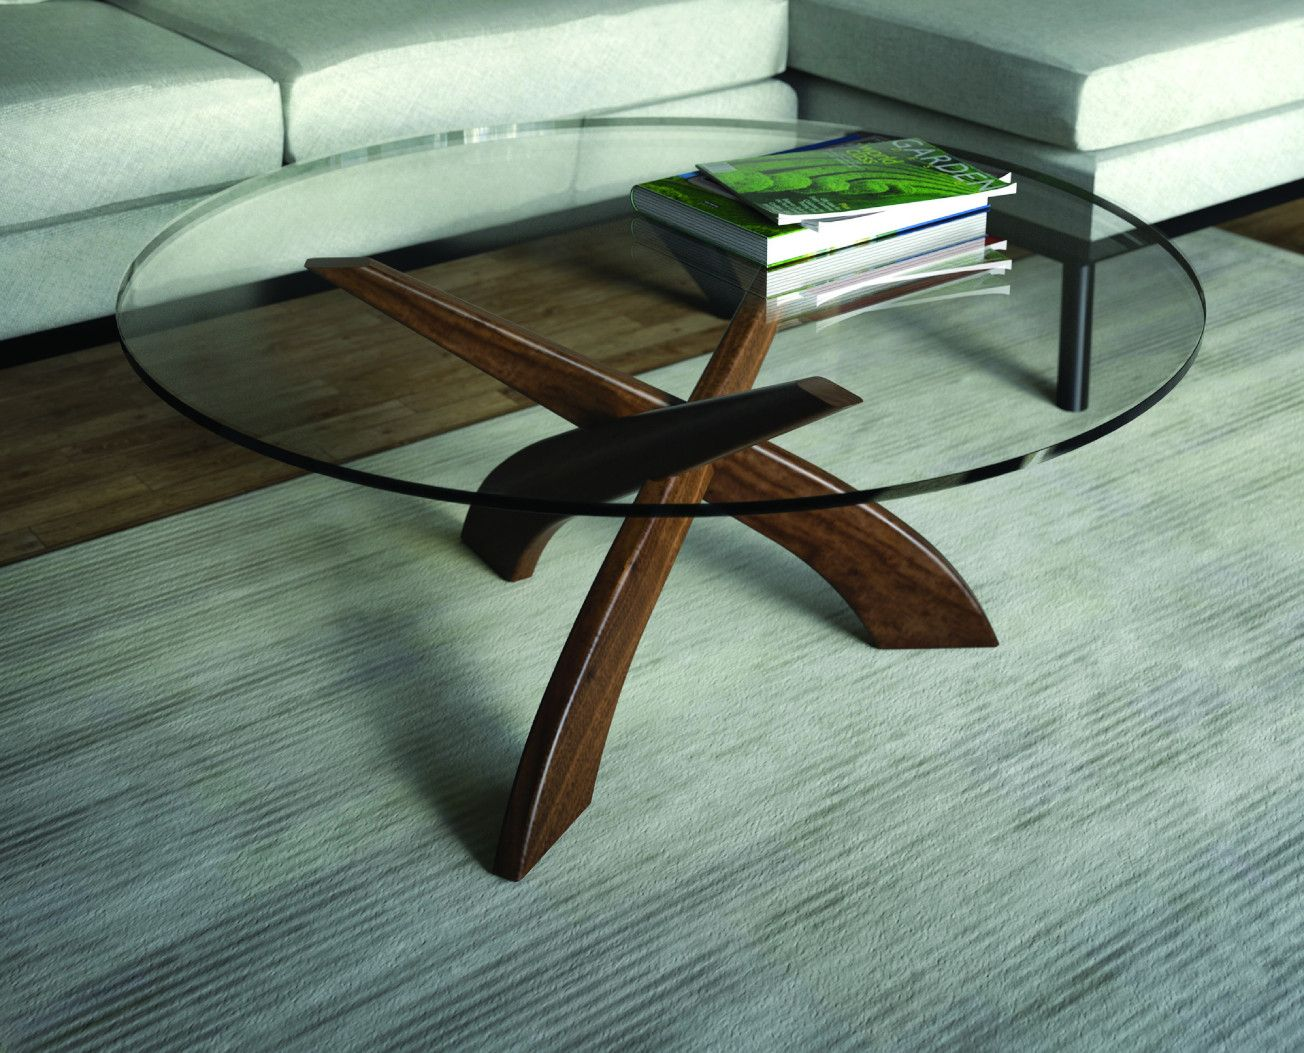 Entwine Coffee Table Round Glass Coffee Table Coffee Table Modern Coffee Table Decor [ 1053 x 1304 Pixel ]